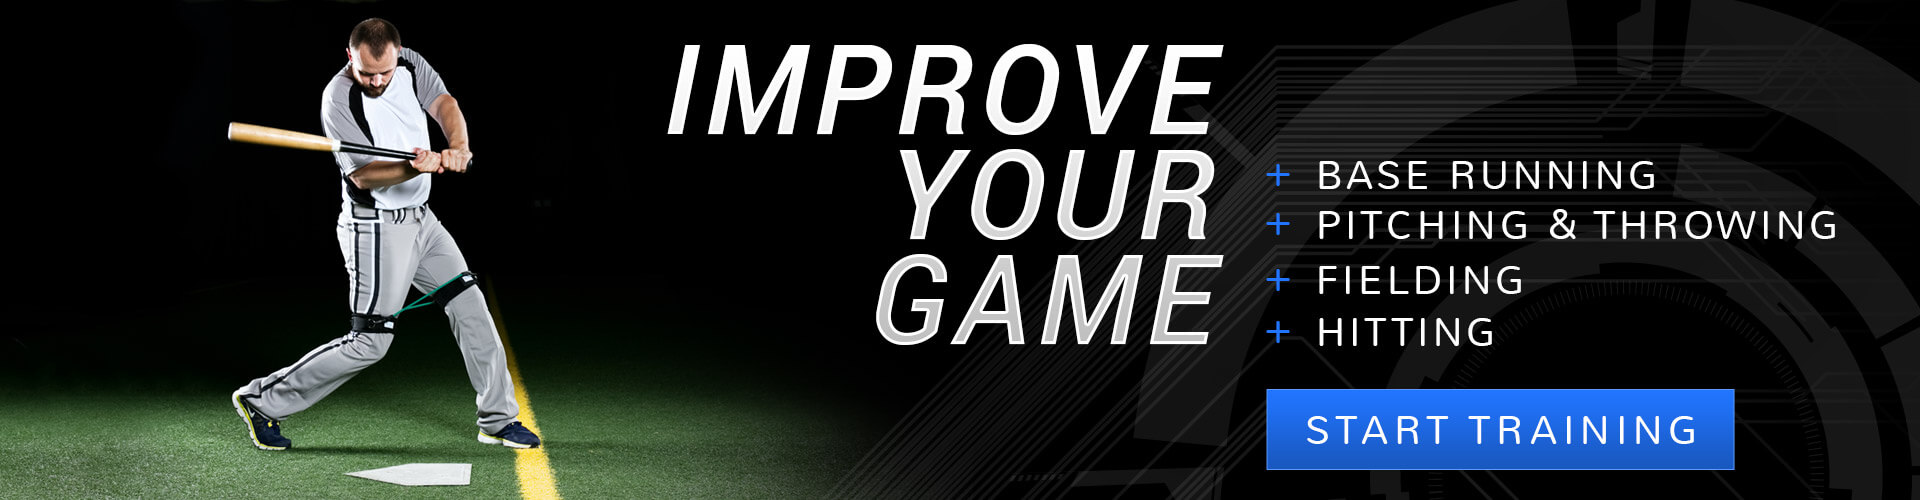 Improve Your Game in Baseball: +Base Running +Pitching & Throwing +Fielding +Hitting - Start Training